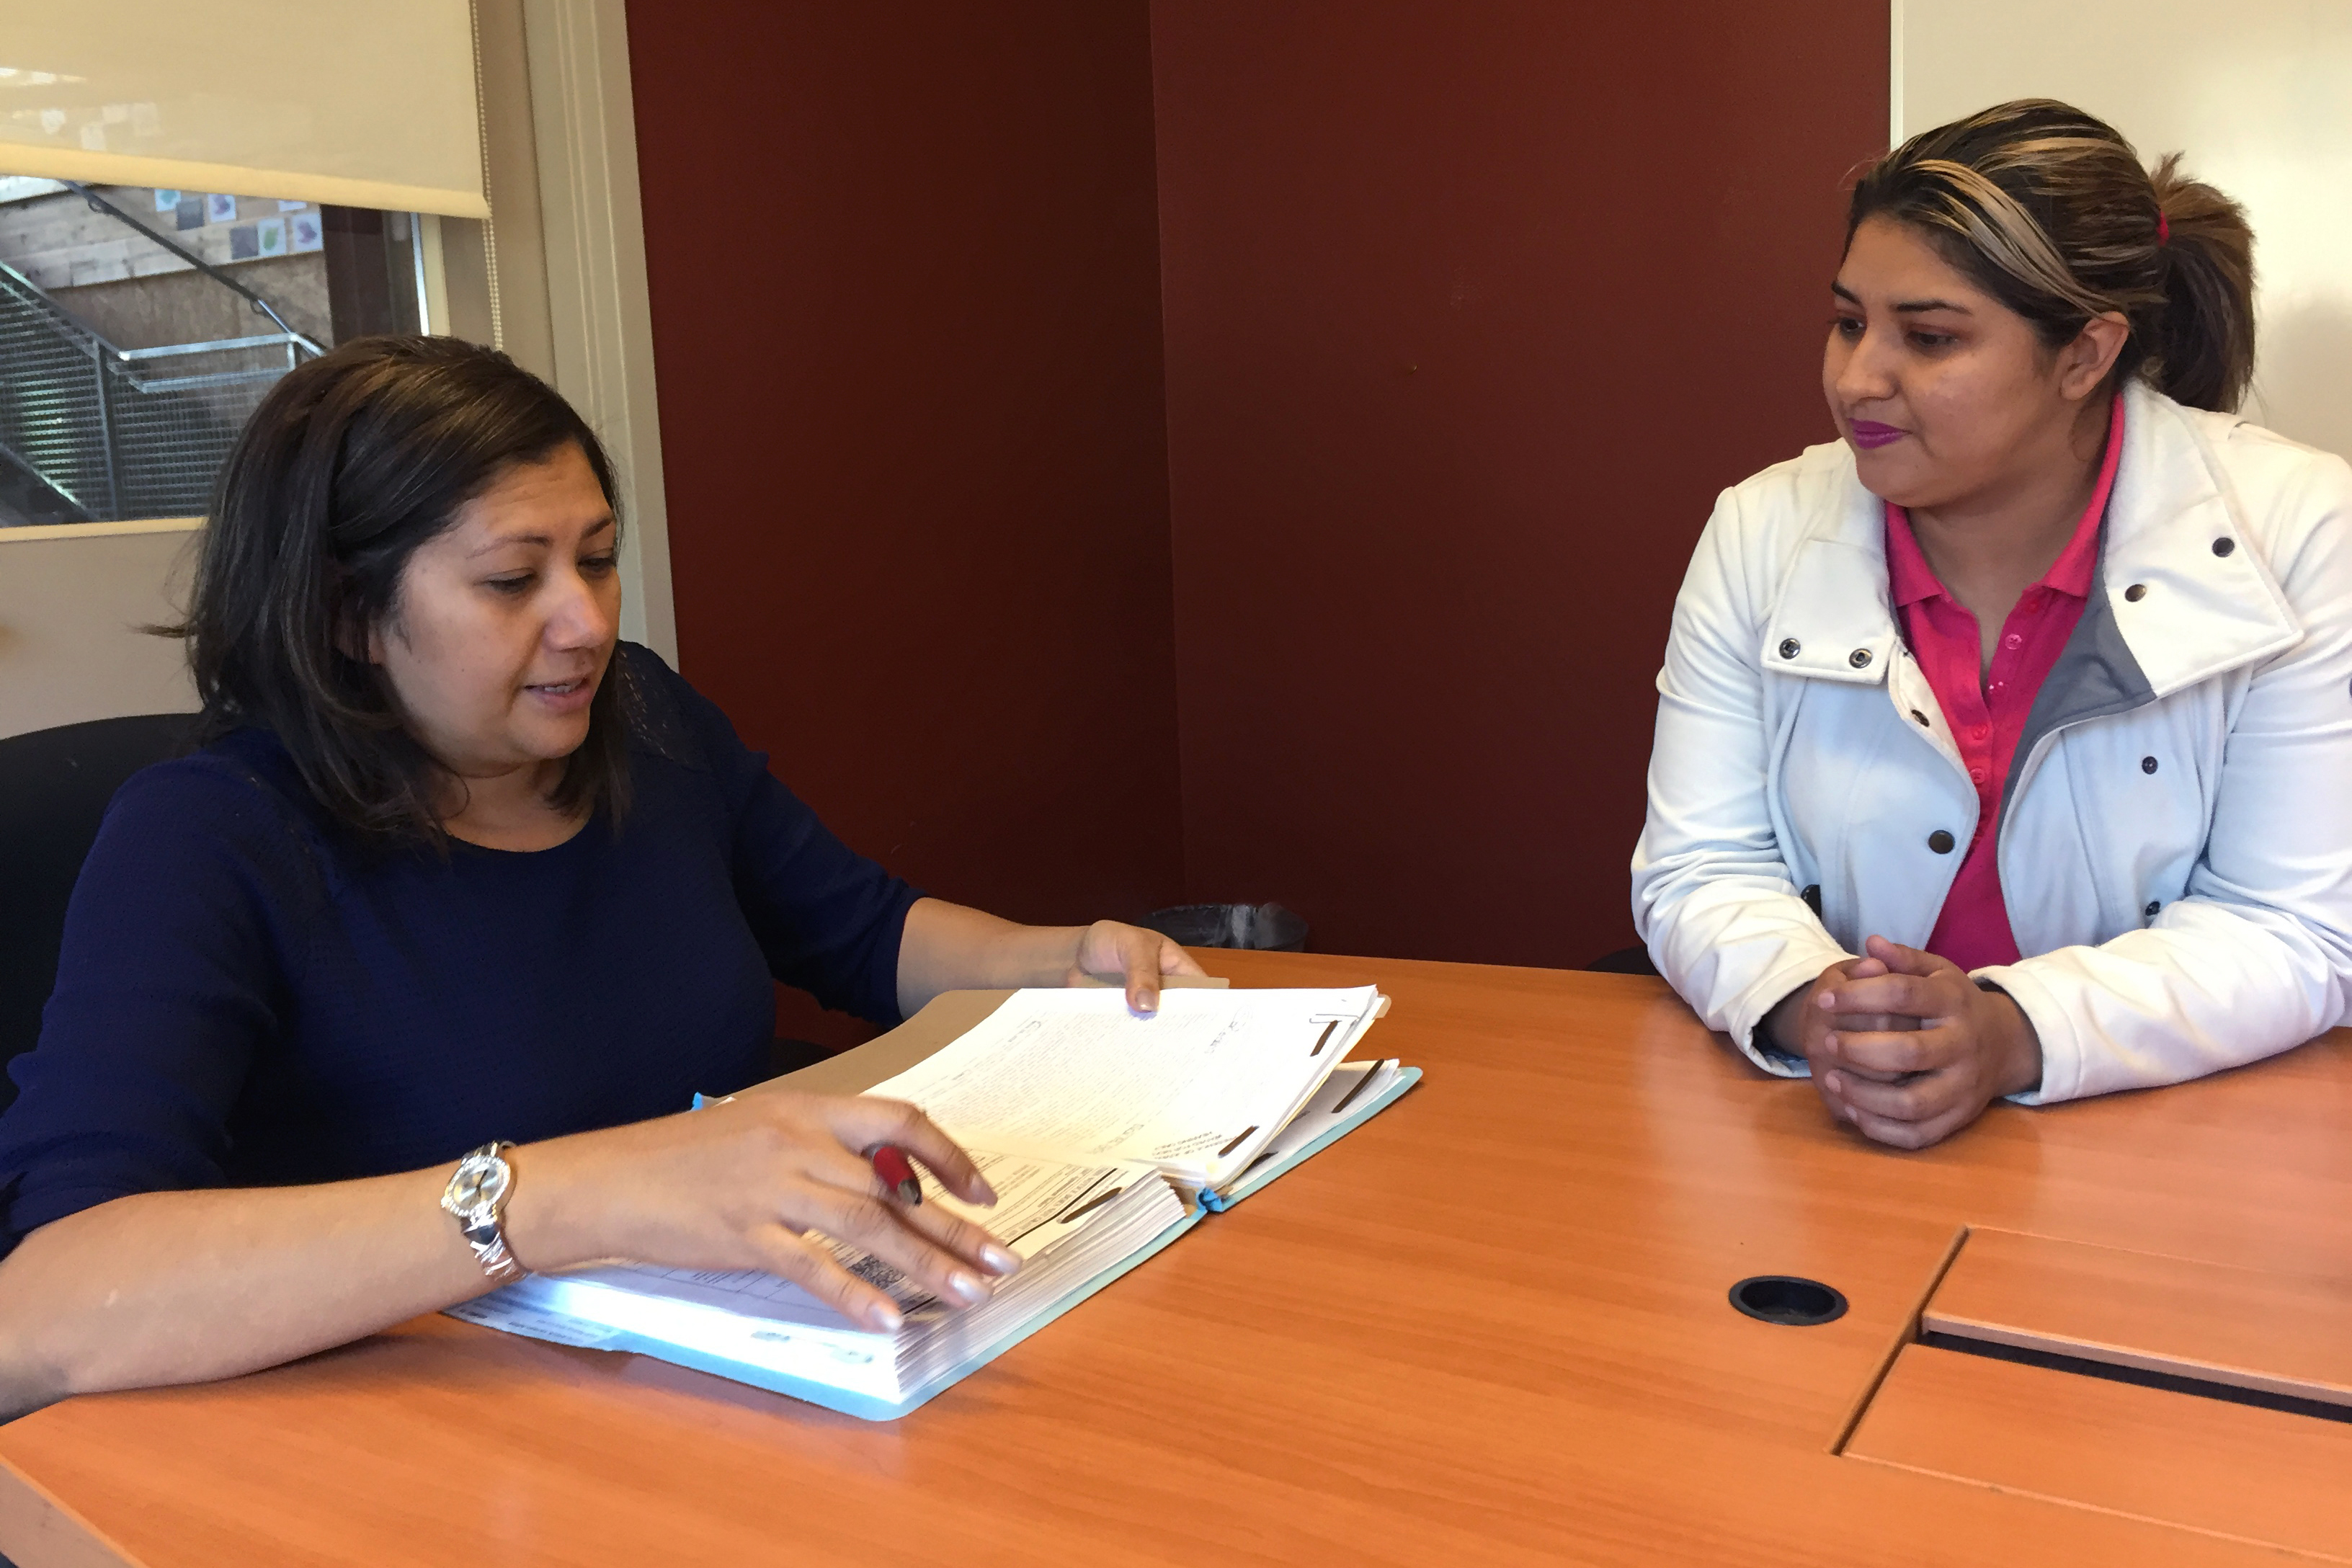 <p>Carmen Ortiz (right) discusses her asylum case with her lawyer, Sulma Mendoza (left), at the Justice and Mercy Legal Aid Center in Denver on Nov. 5, 2018. The center received a $95,500 grant from the Denver Immigrant Legal Services Fund to represent people in deportation proceedings. The goal of the fund is to expand the pro bono capacity in Denver to handle everything from removal cases to naturalization paperwork.</p>